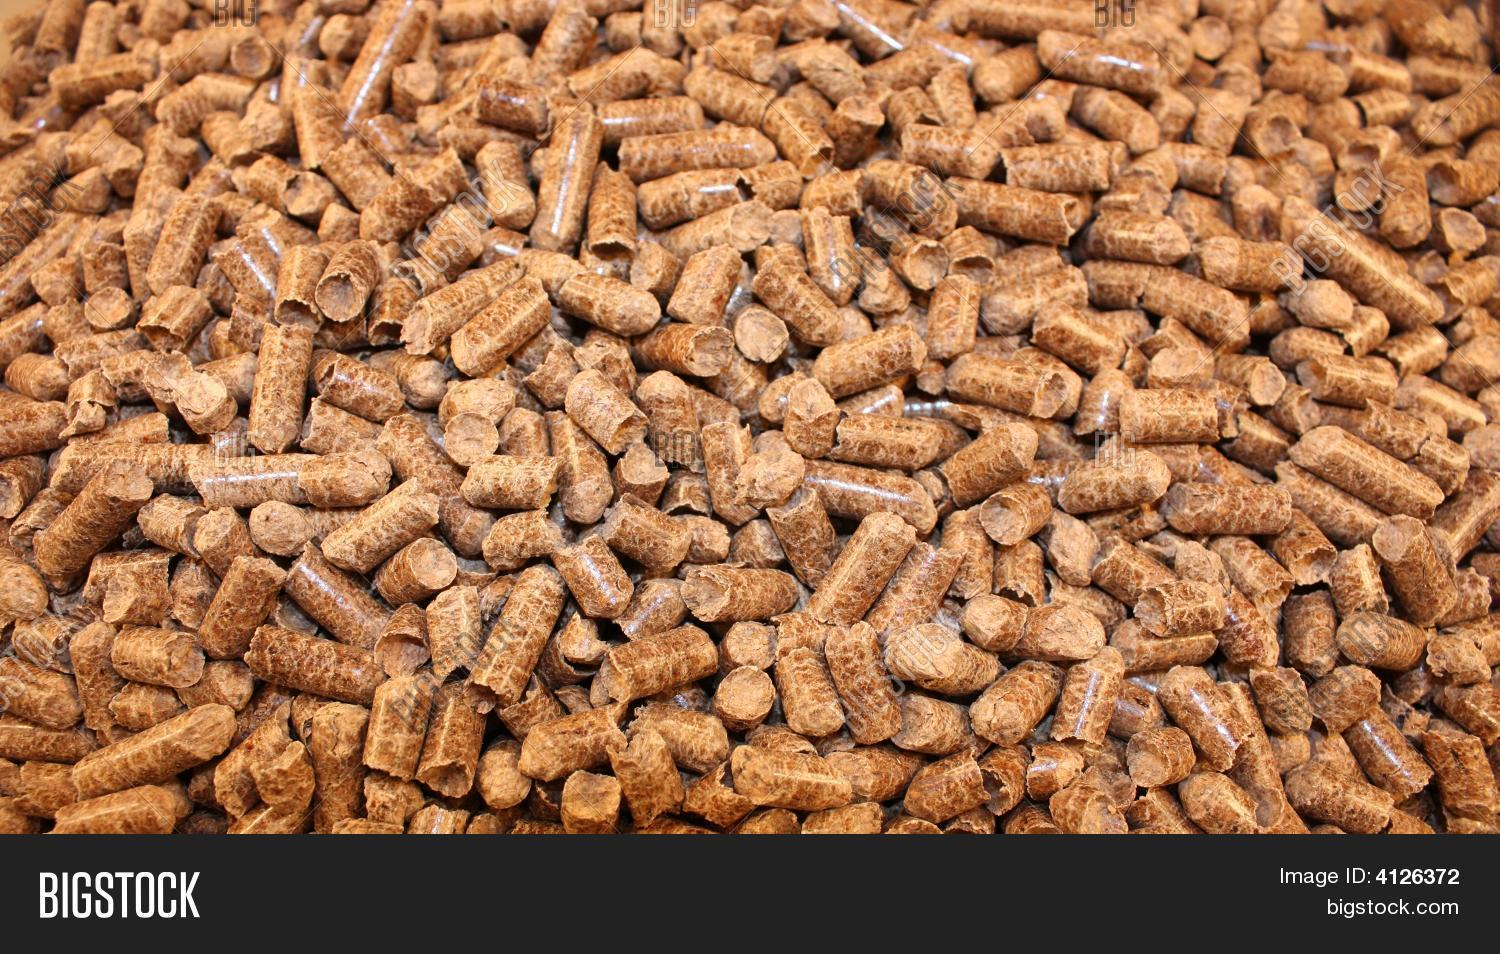 Wood Pellets Are Used For What ~ Hardwood pellets image photo bigstock